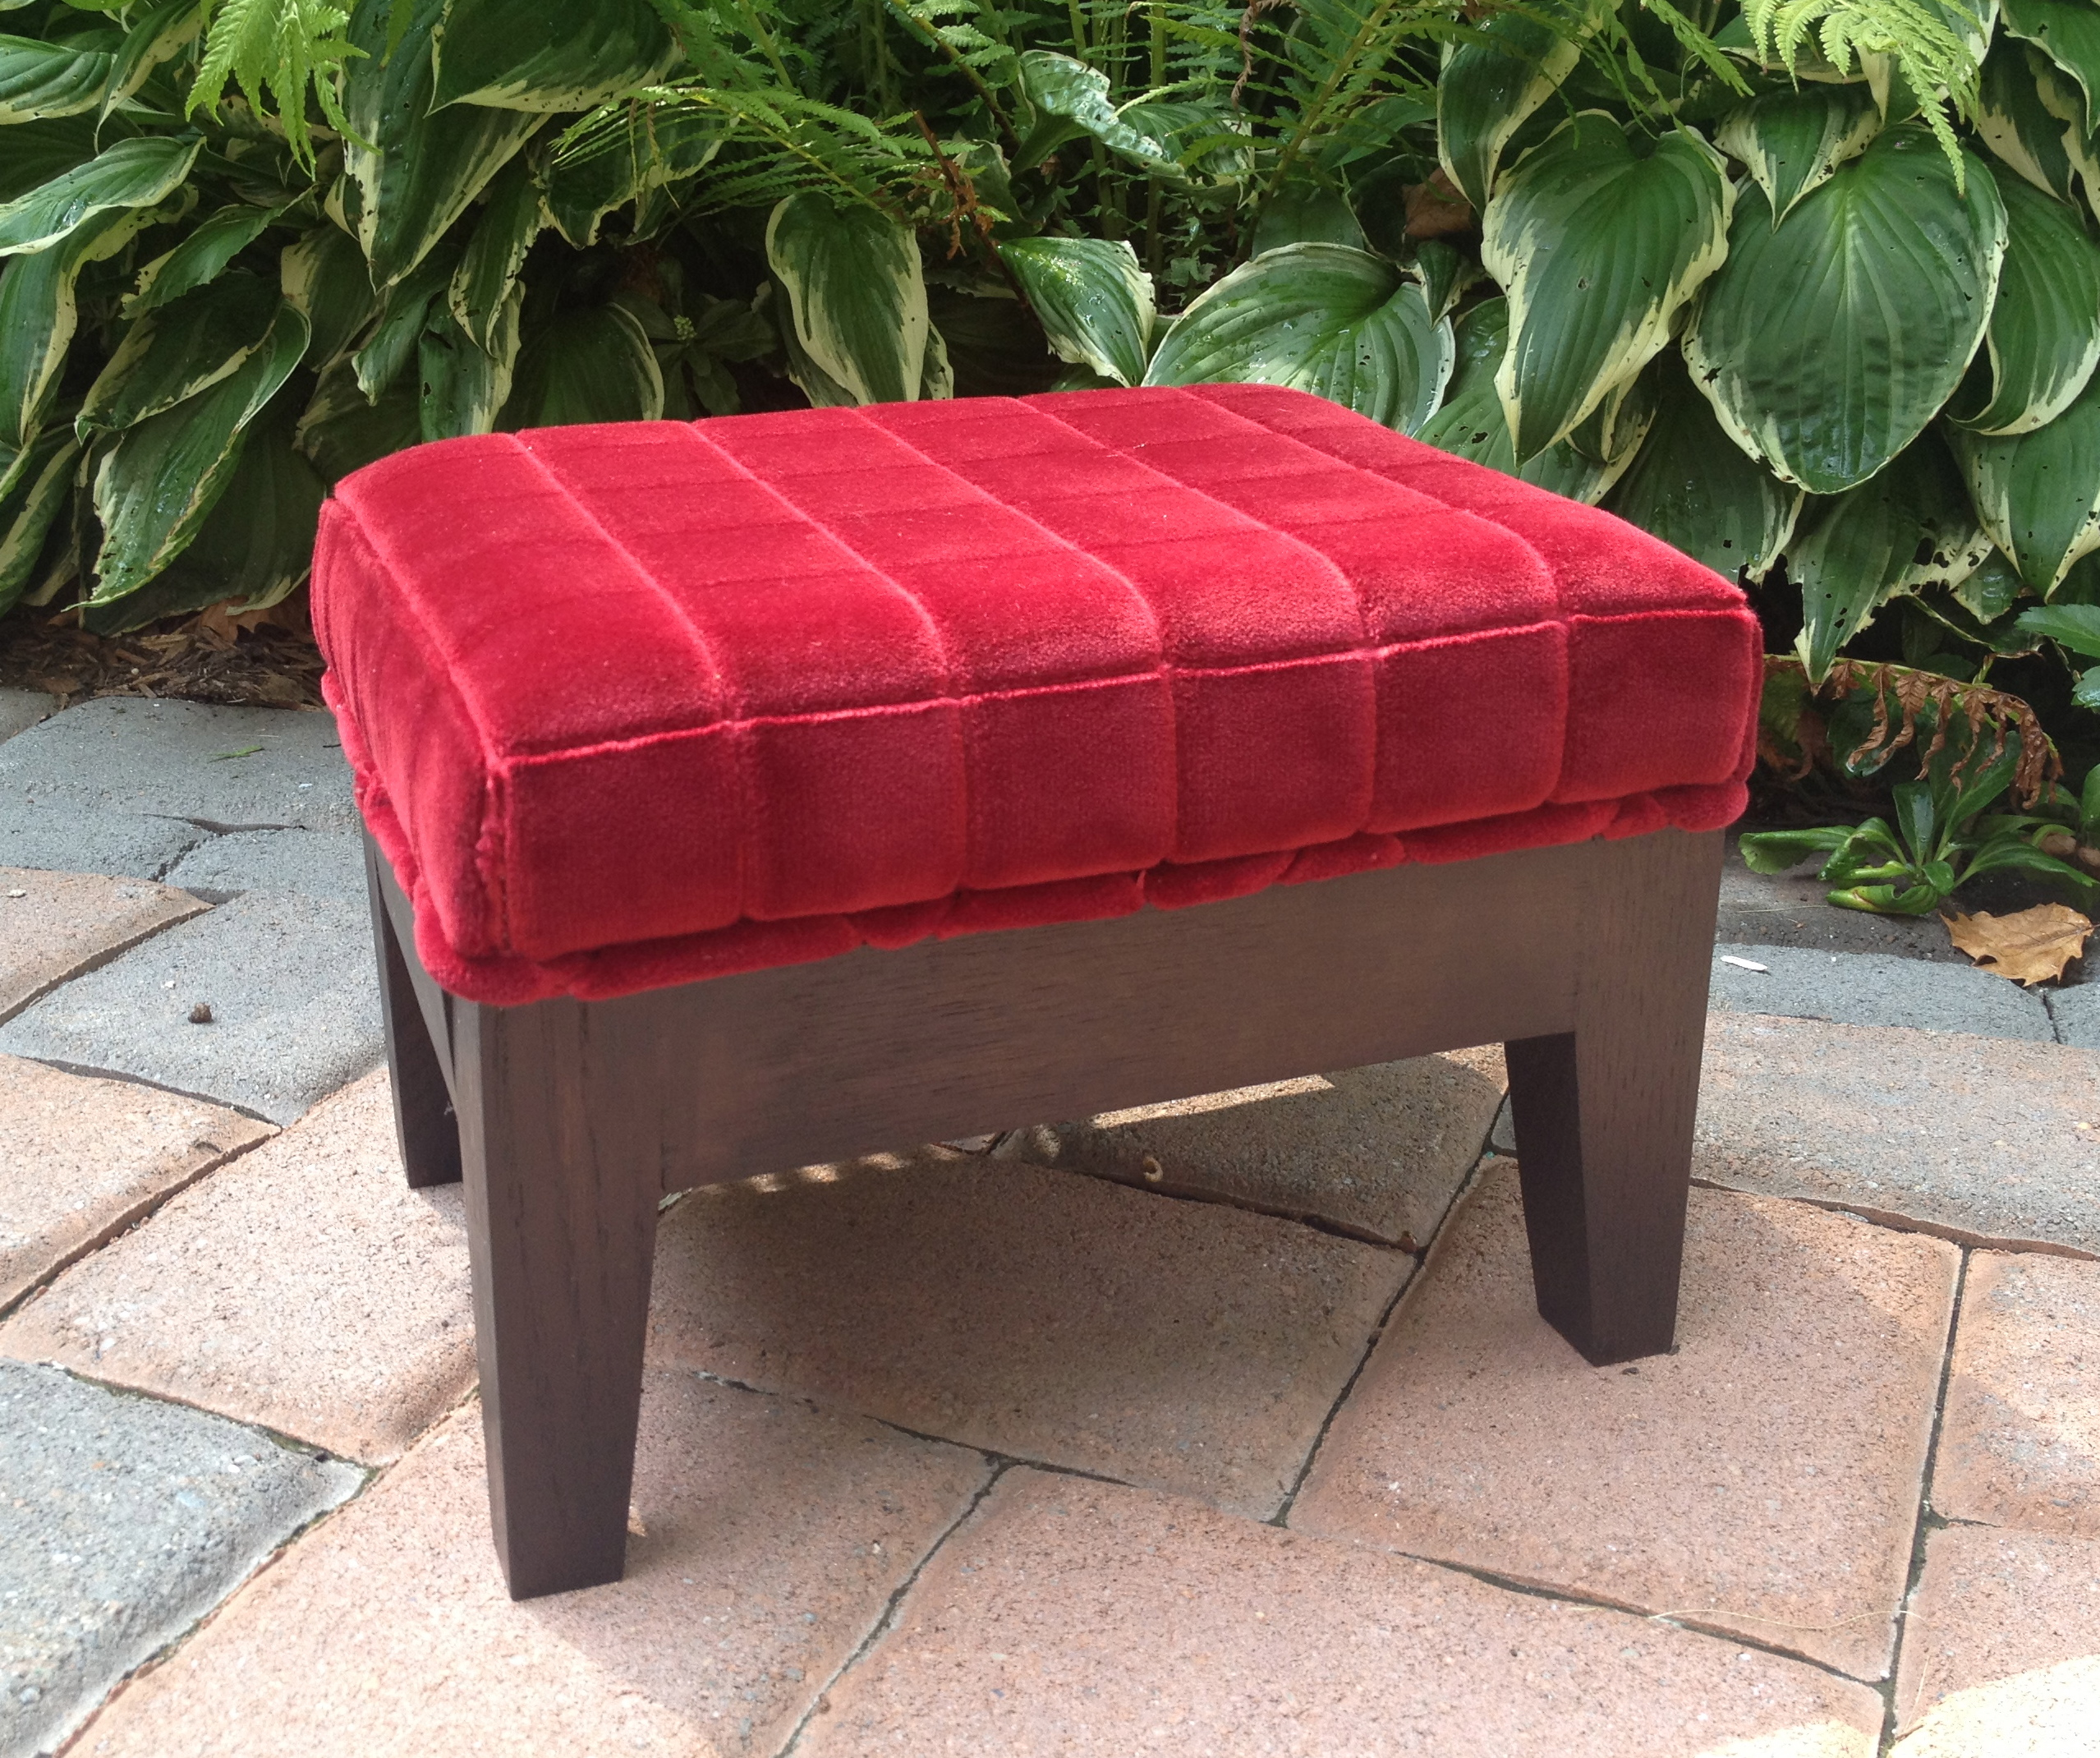 Purse Stool for Restaurant Dining